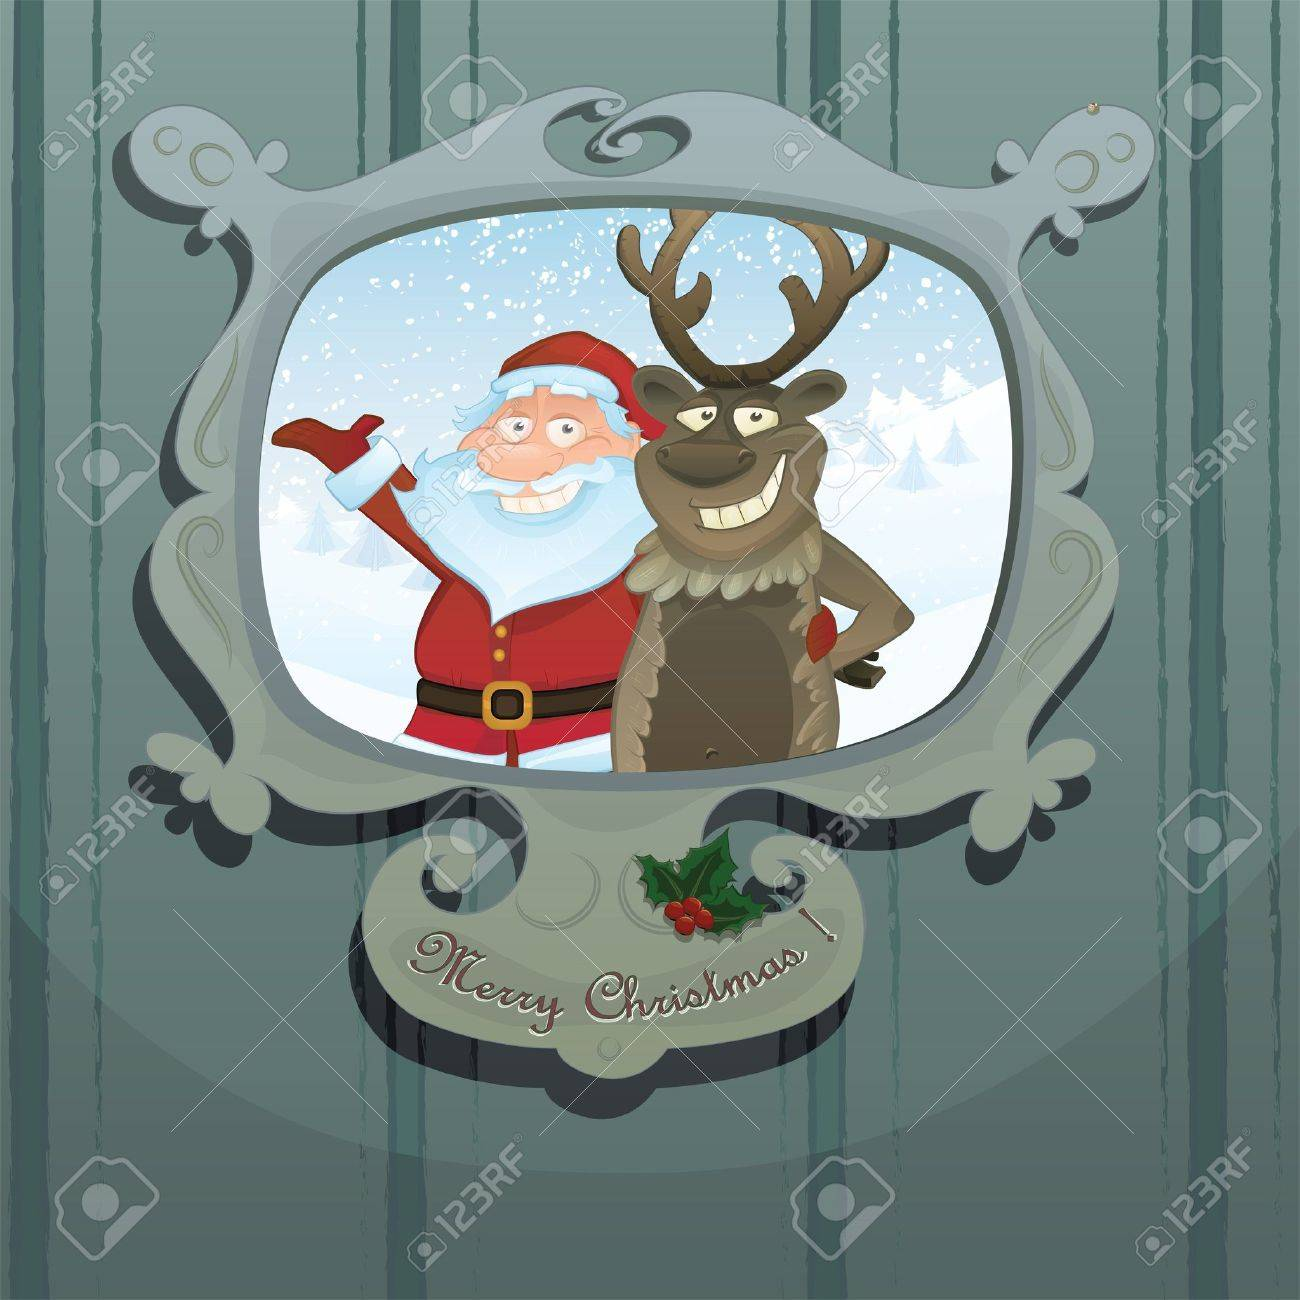 Christmas series. Funny Santa Claus and Rudolph reindeer in a picture frame Stock Vector - 11157262